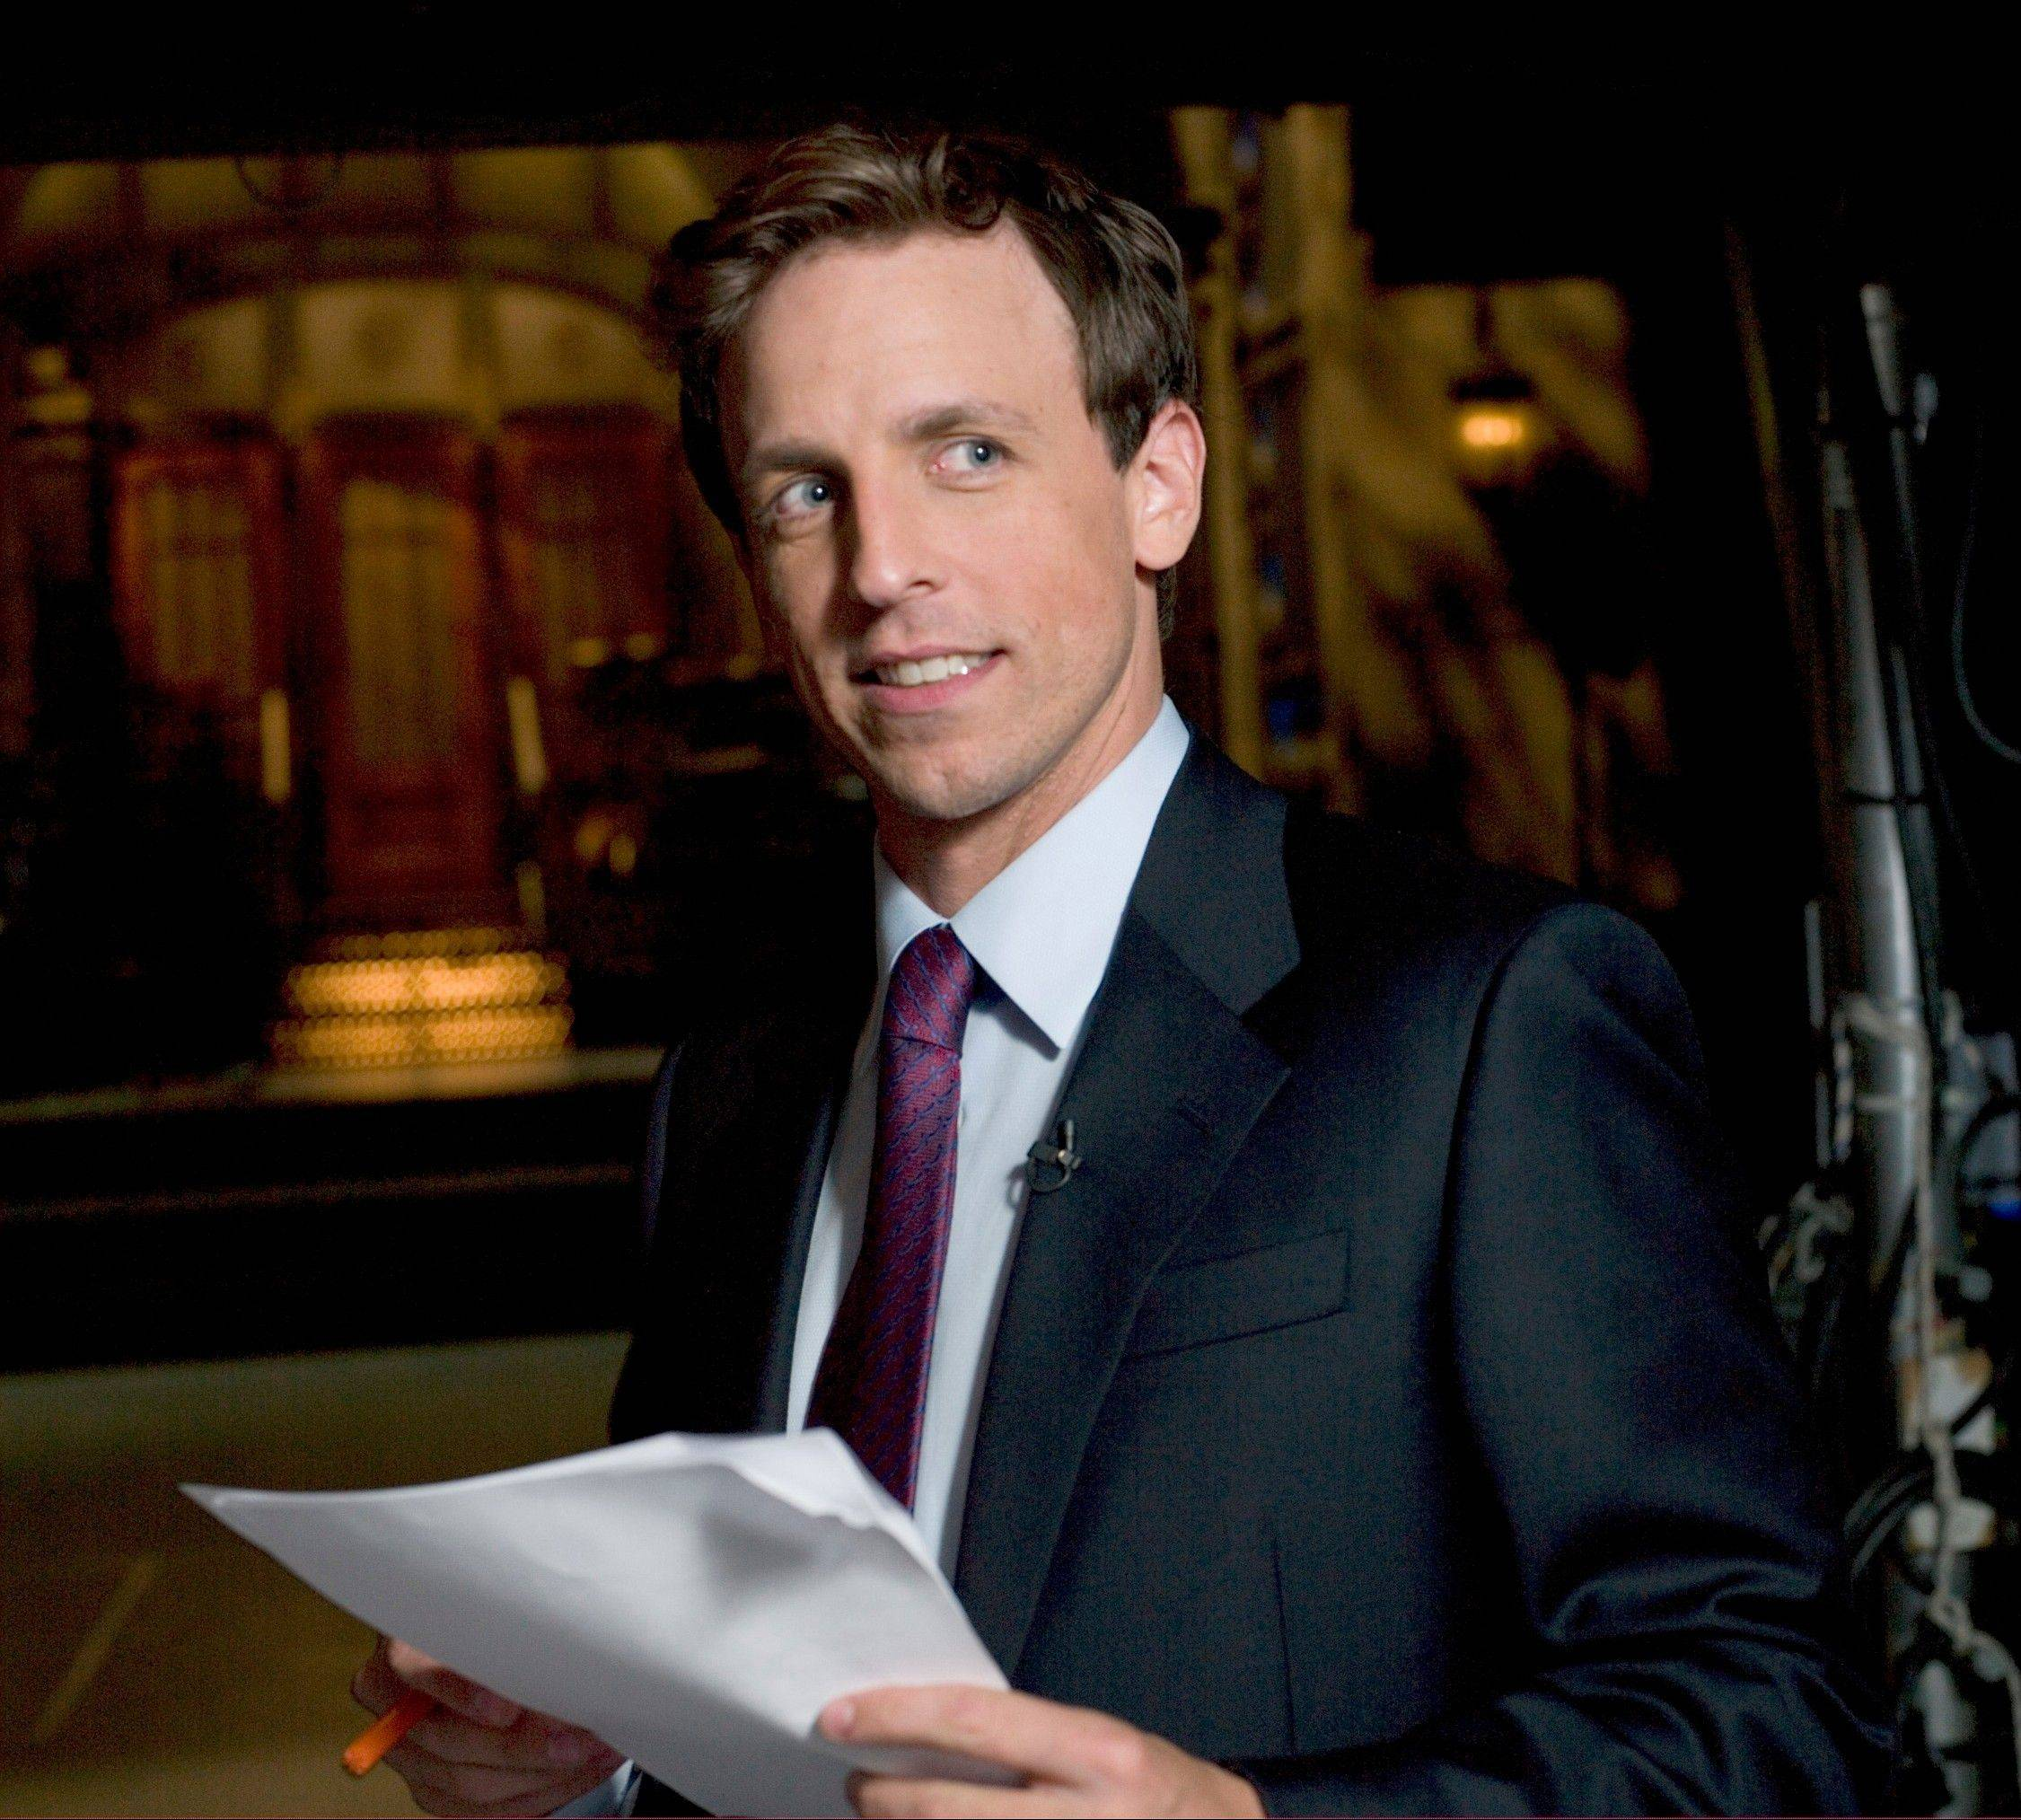 Seth Meyers appears June 14 at the Chicago Theatre.